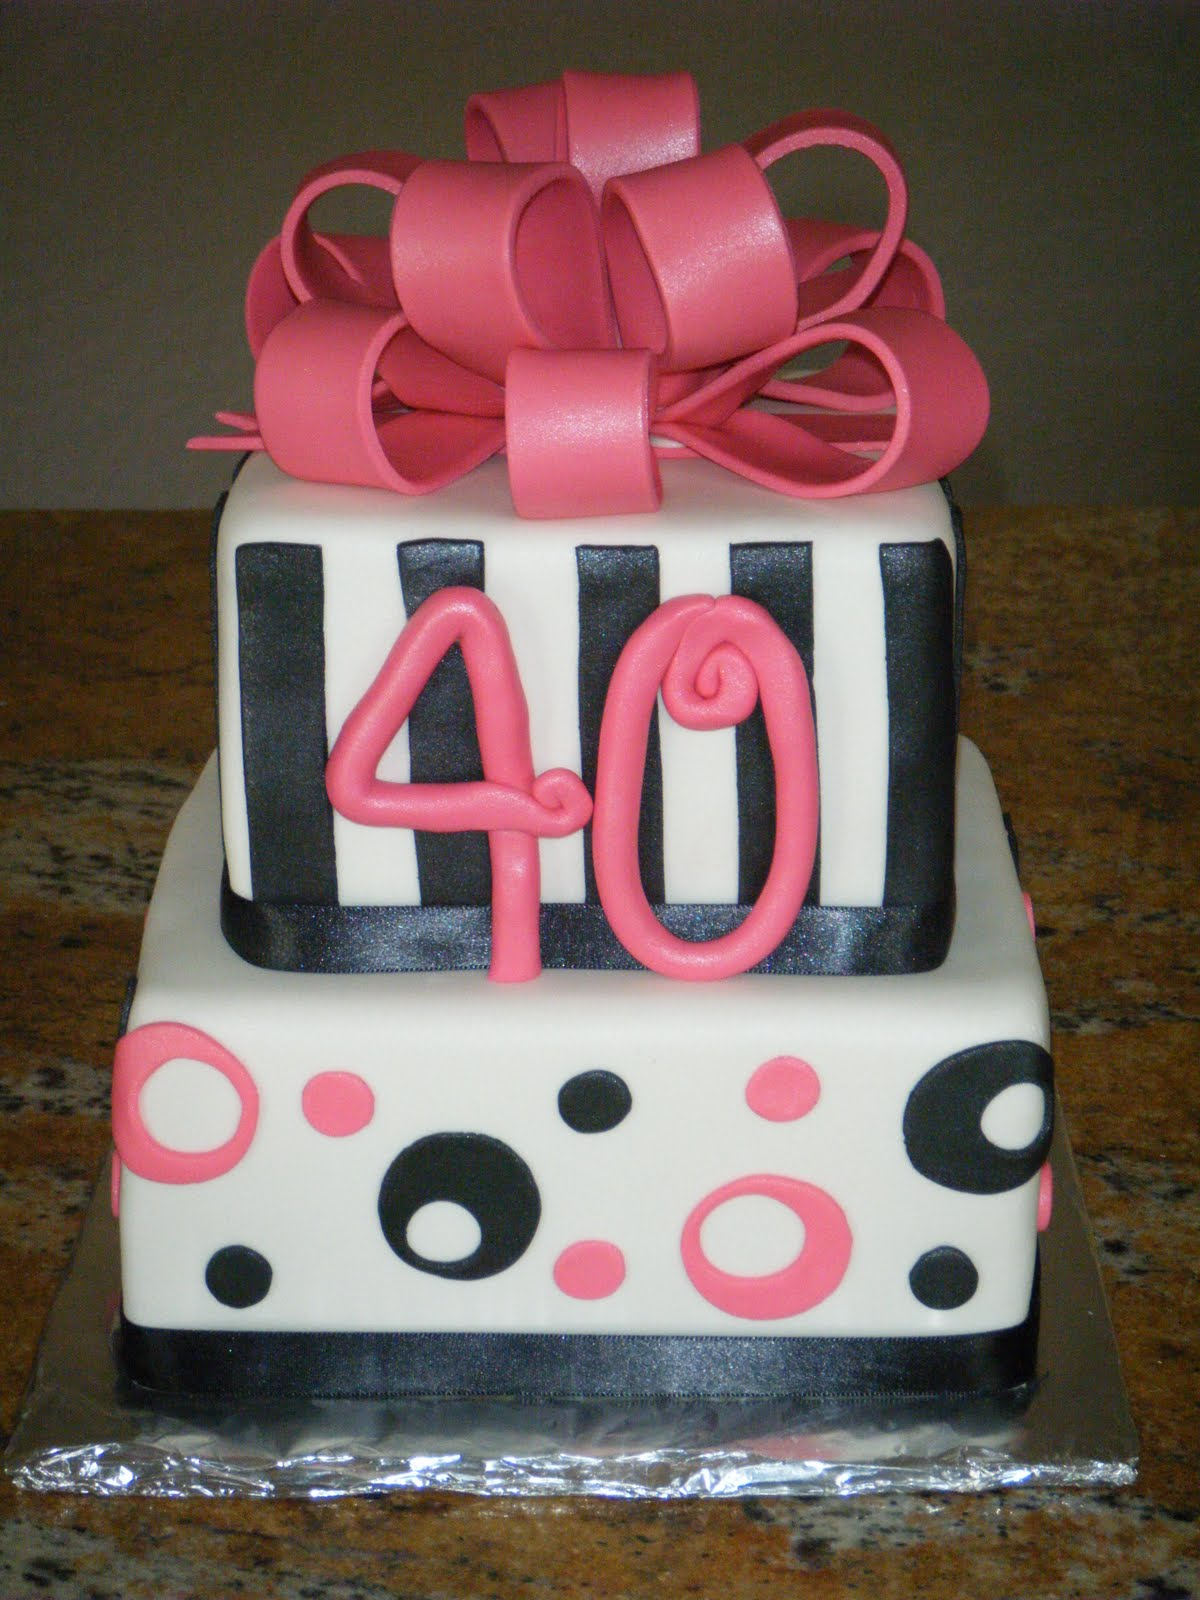 40Th Birthday Cakes For Her 40th Birthday Cakes Classic Style Best 40th Birthday Cakes